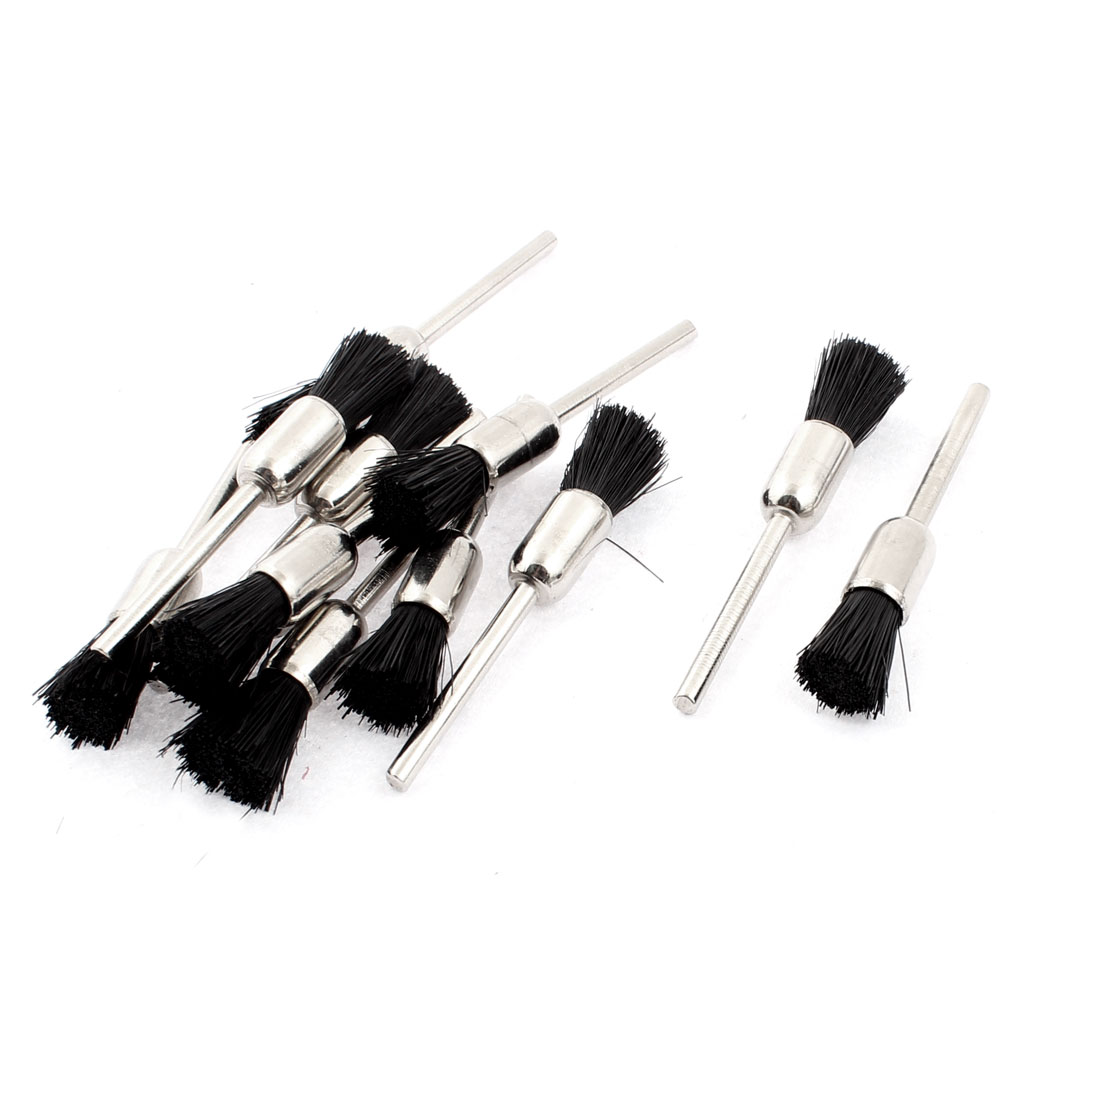 Rotary Tool Polishing Jewelry Repairing 8mm Dia Nylon Bristle Brush Black 12pcs